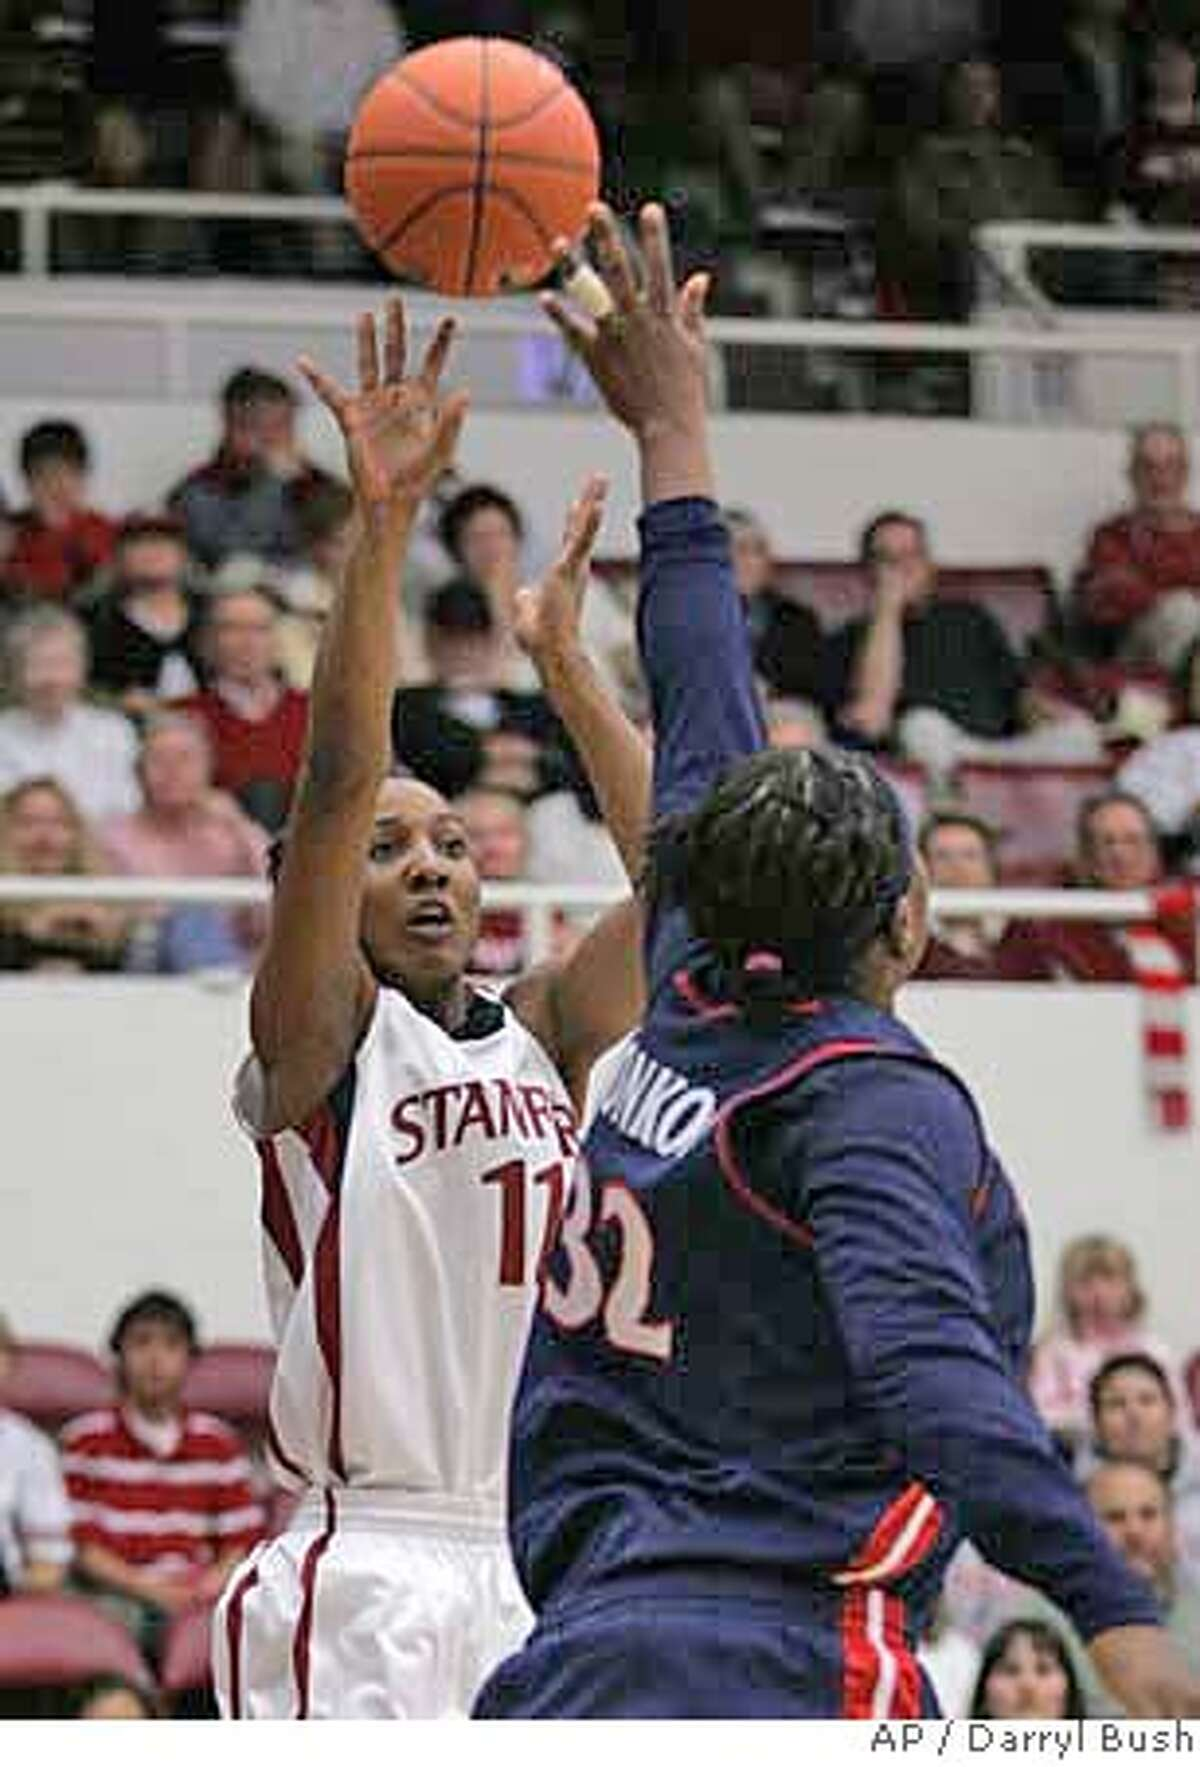 Stanford's Candice Wiggins (11) shoots over Arizona's Amina Njonkou (32) in the first half of their NCAA basketball game in Stanford, Calif., Thursday, Feb. 14, 2008. (AP Photo/Darryl Bush) EFE OUT